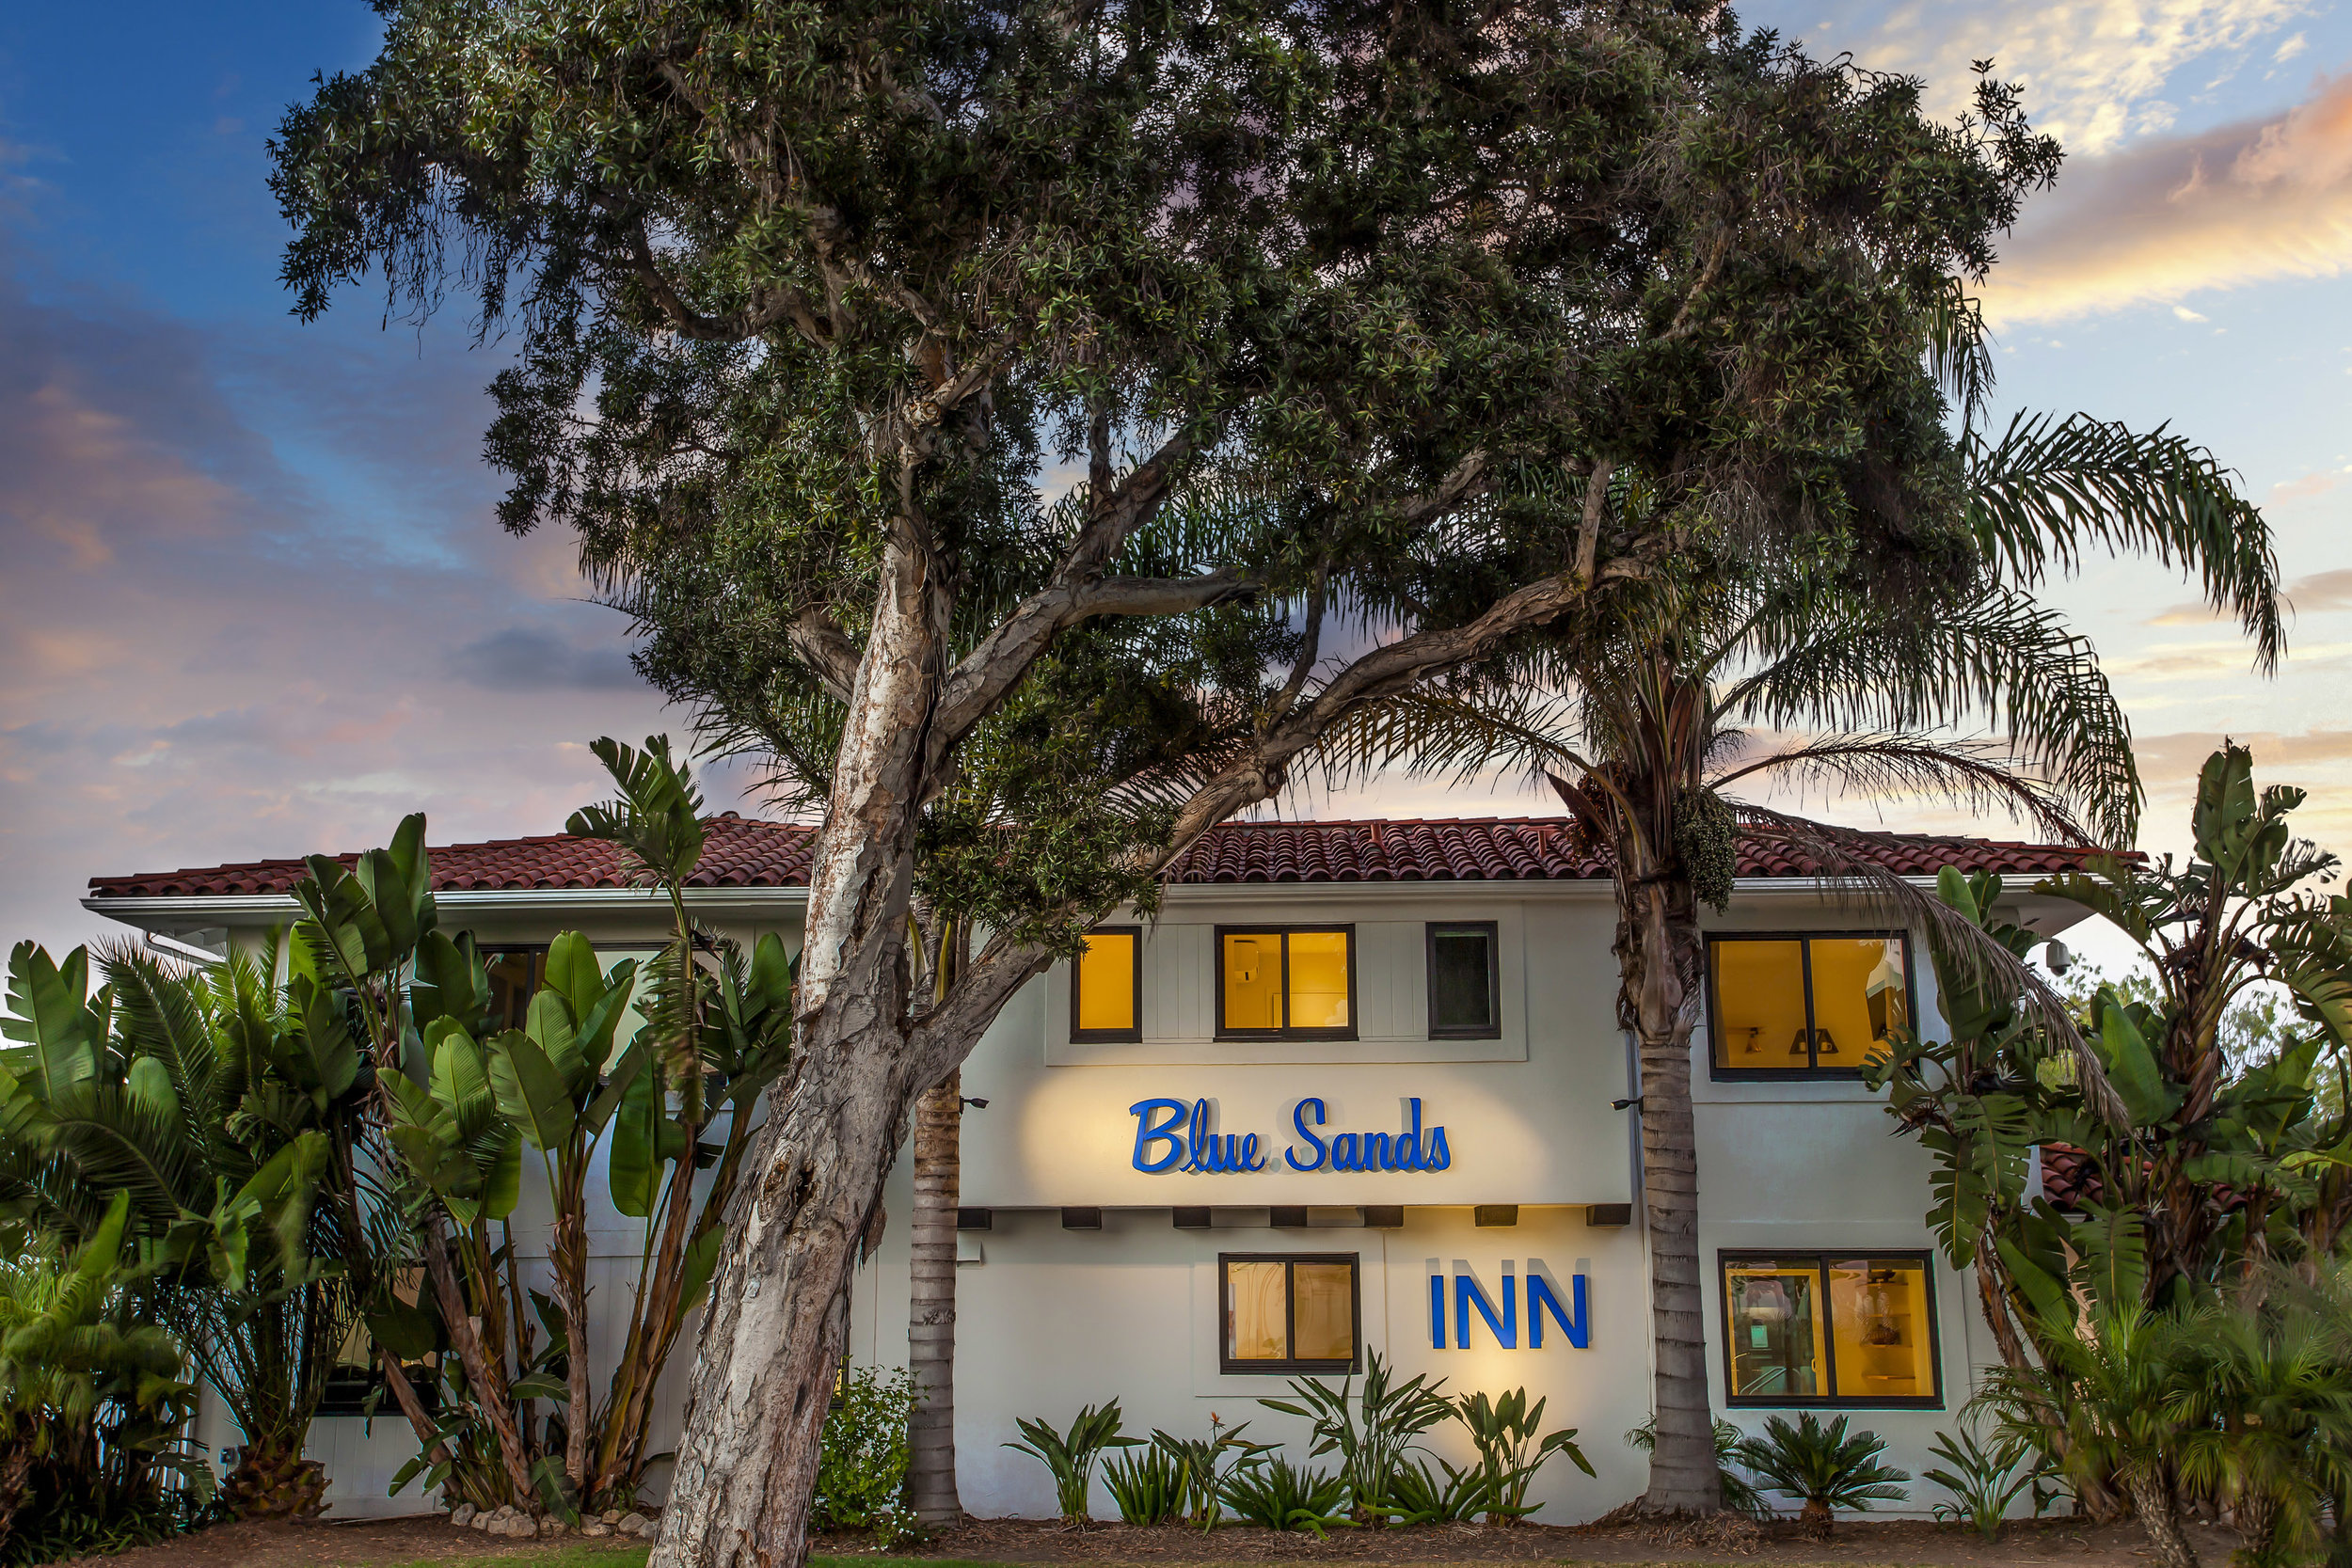 Welcome toBlue Sands Inn - Located just steps from Santa Barbara's famous East Beach and within walking distance to great restaurants, the Santa Barbara Zoo, the Wharf, and the famed Funk Zone, the Blue Sands Inn is centrally located in one of Santa Barbara's most sought after neighborhoods.